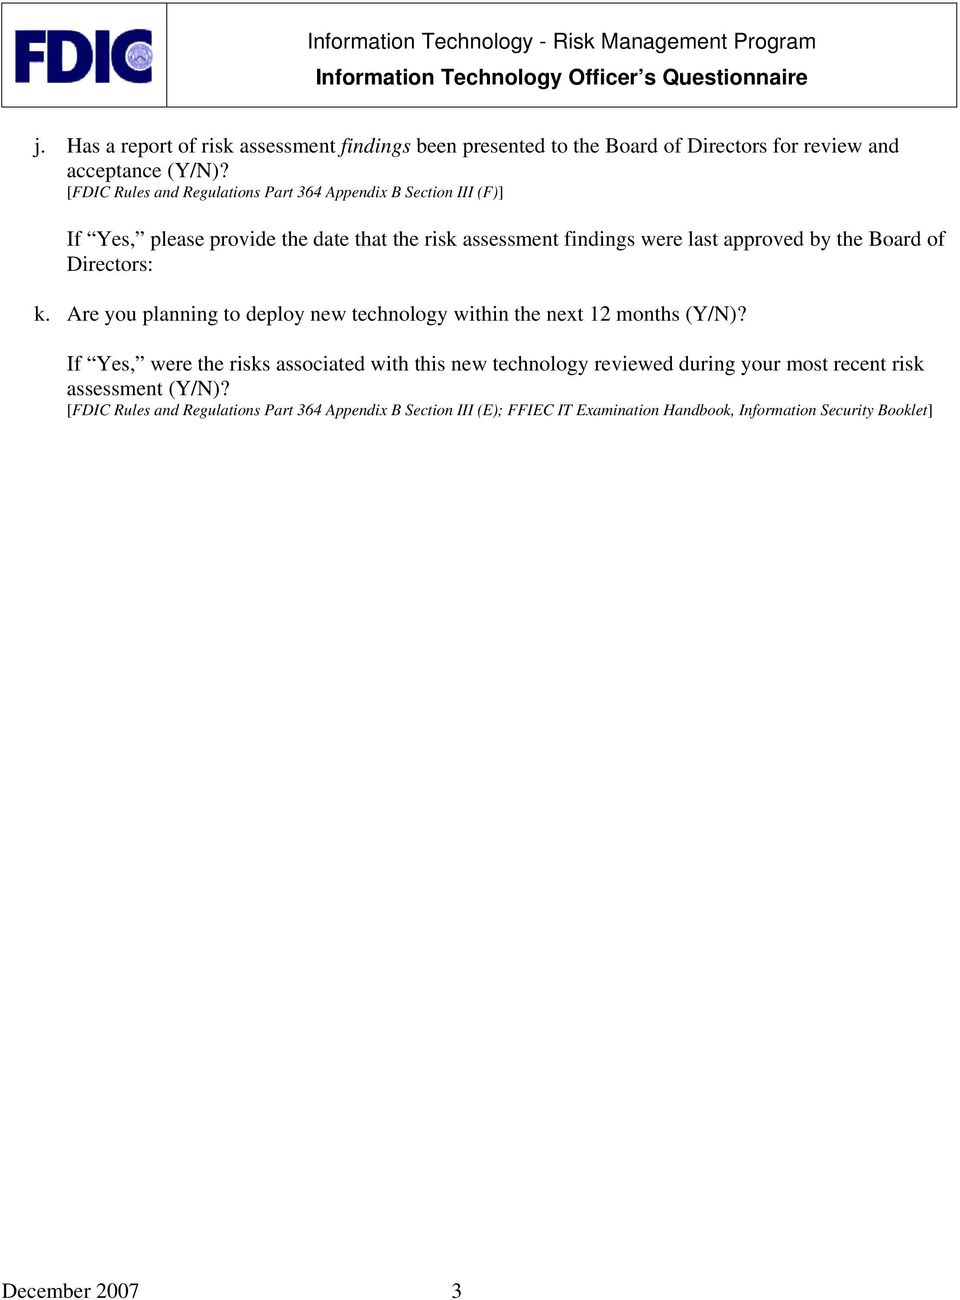 Instructions for Completing the Information Technology